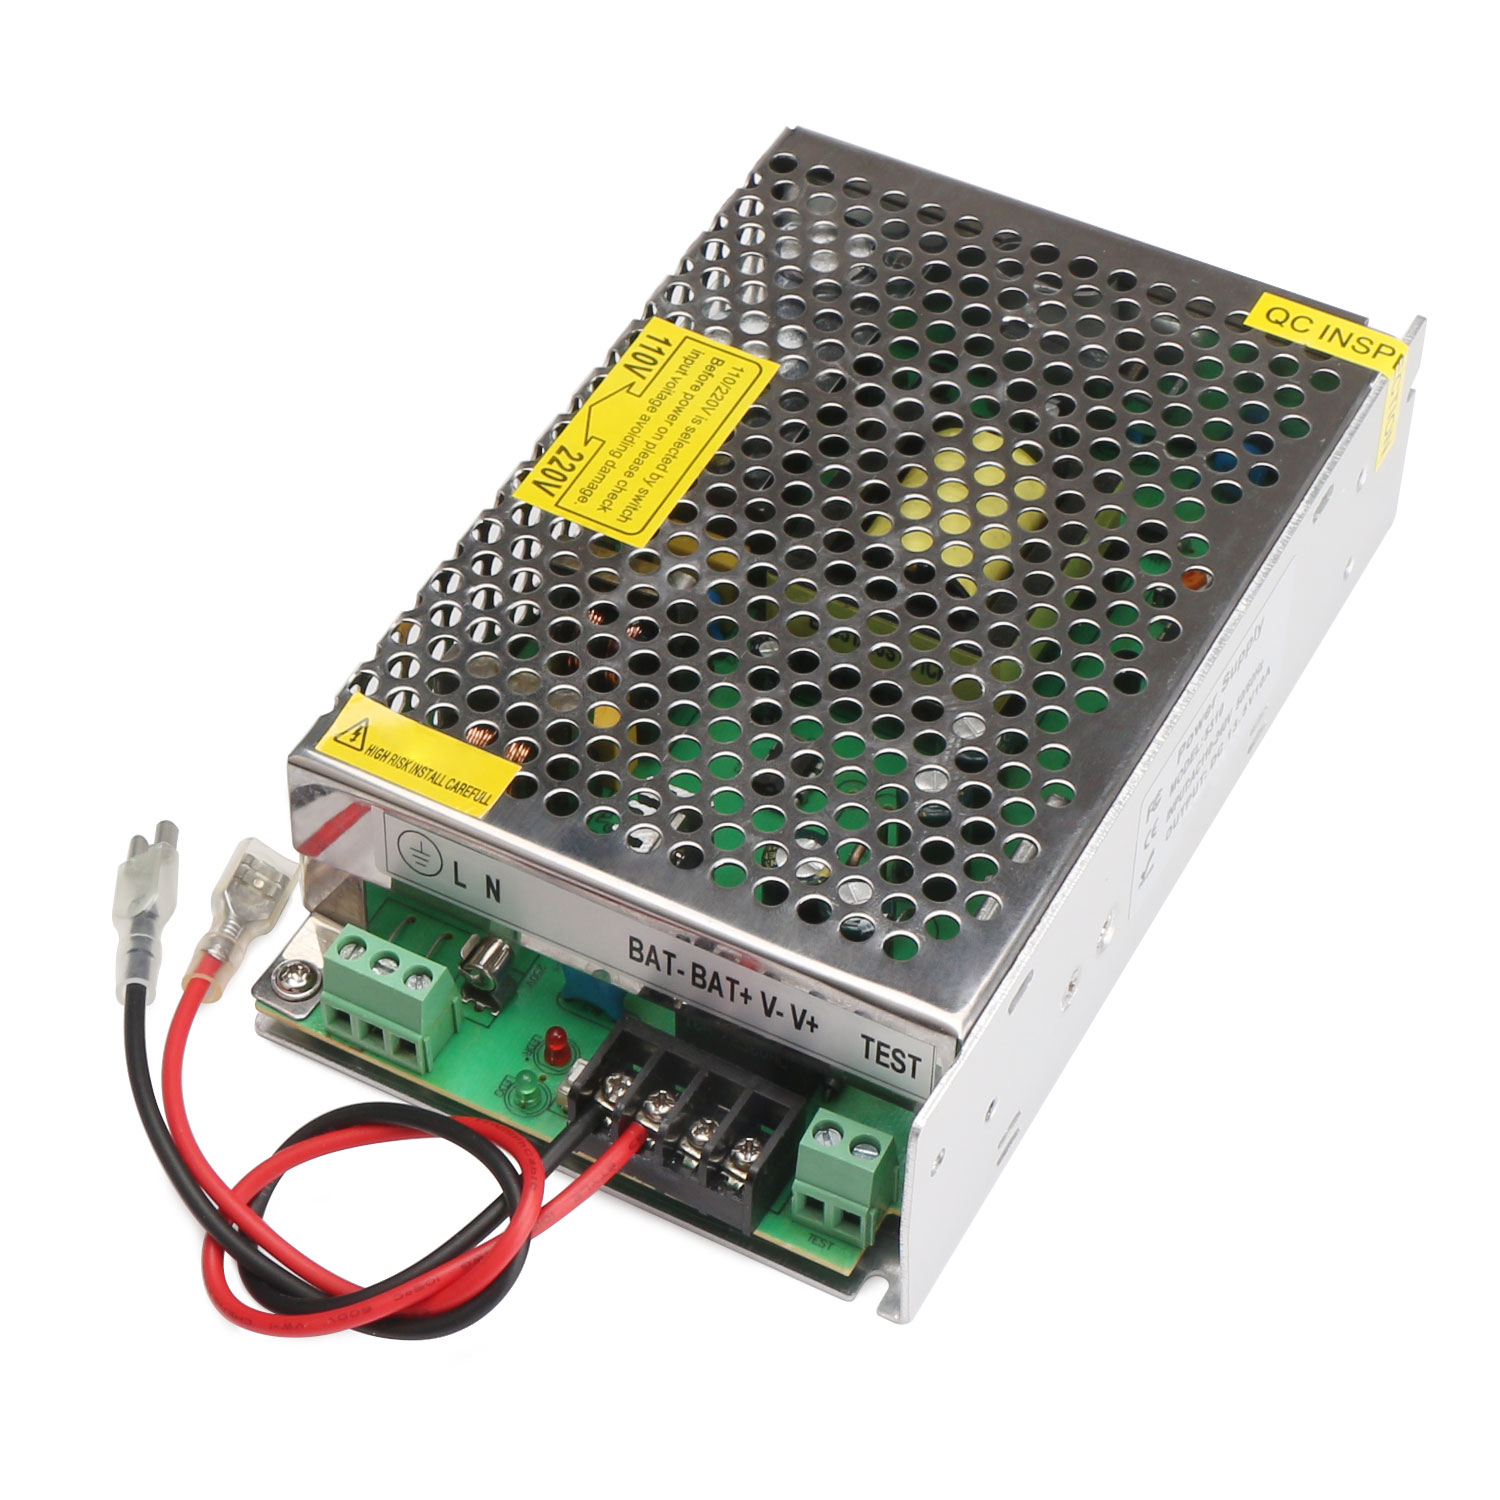 18W AC Power Supply, UPS Module/Charger AC 110V~240V to 13 5